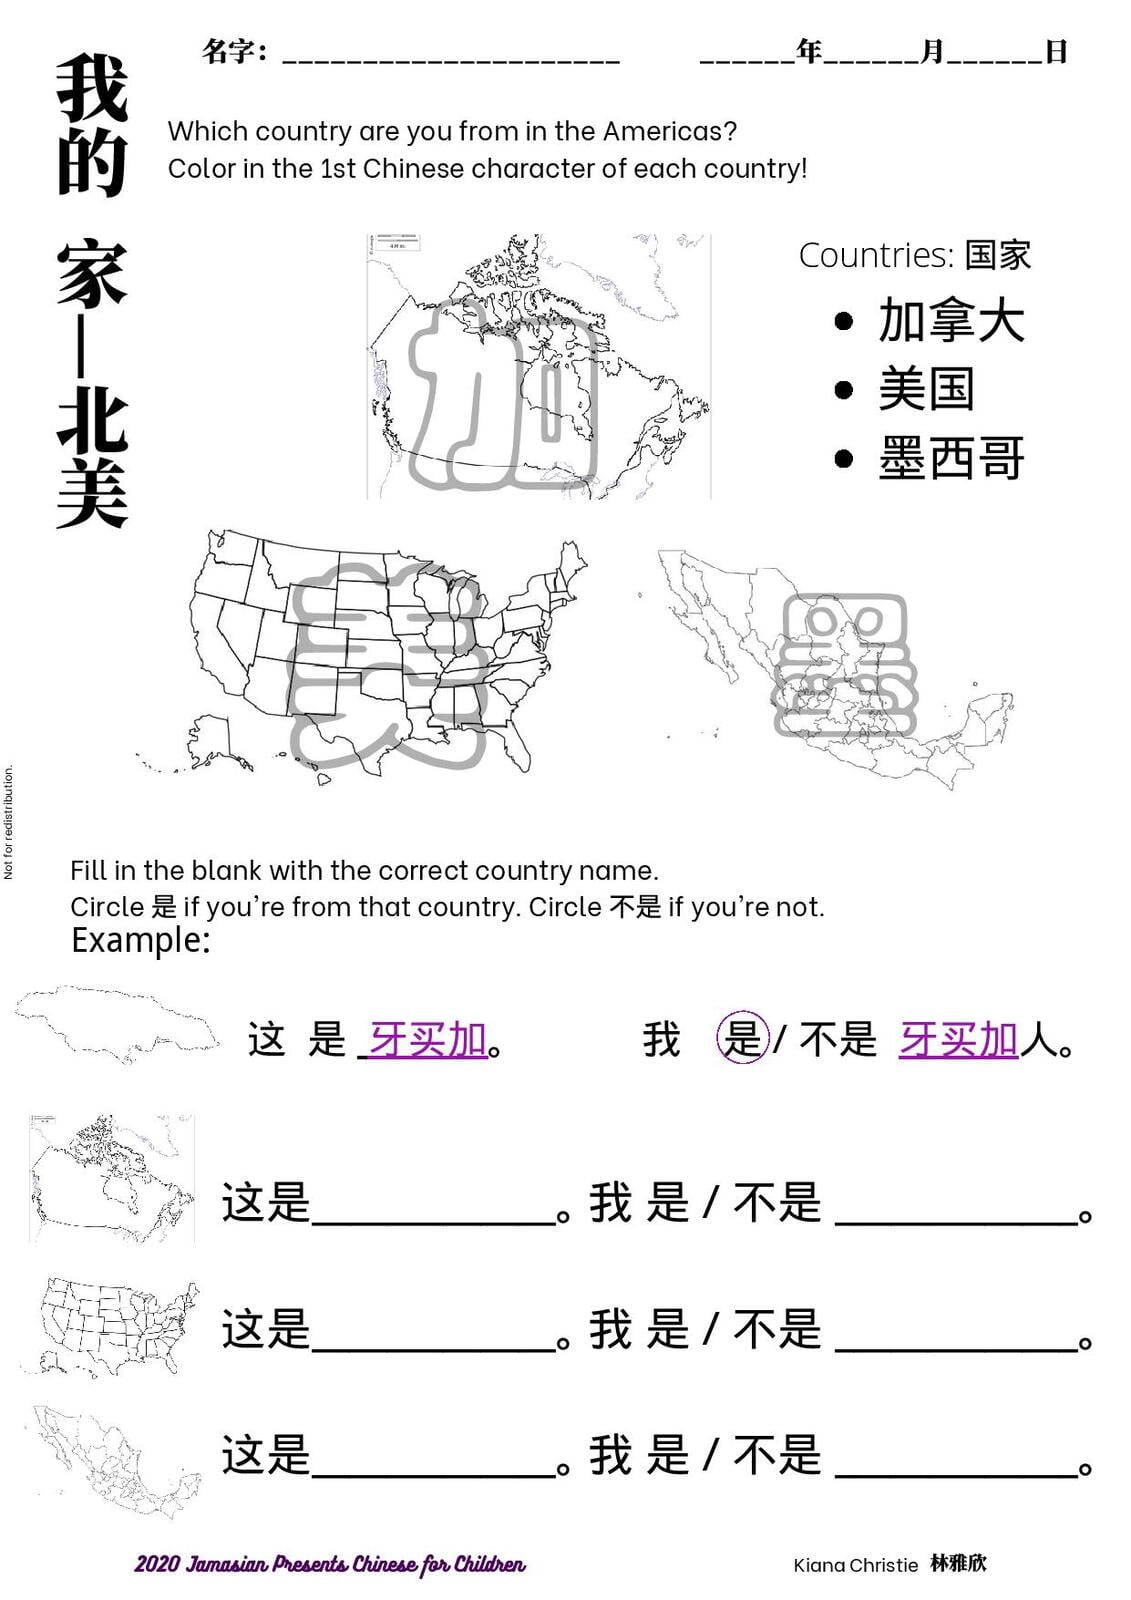 Academic Chinese Classes For Children